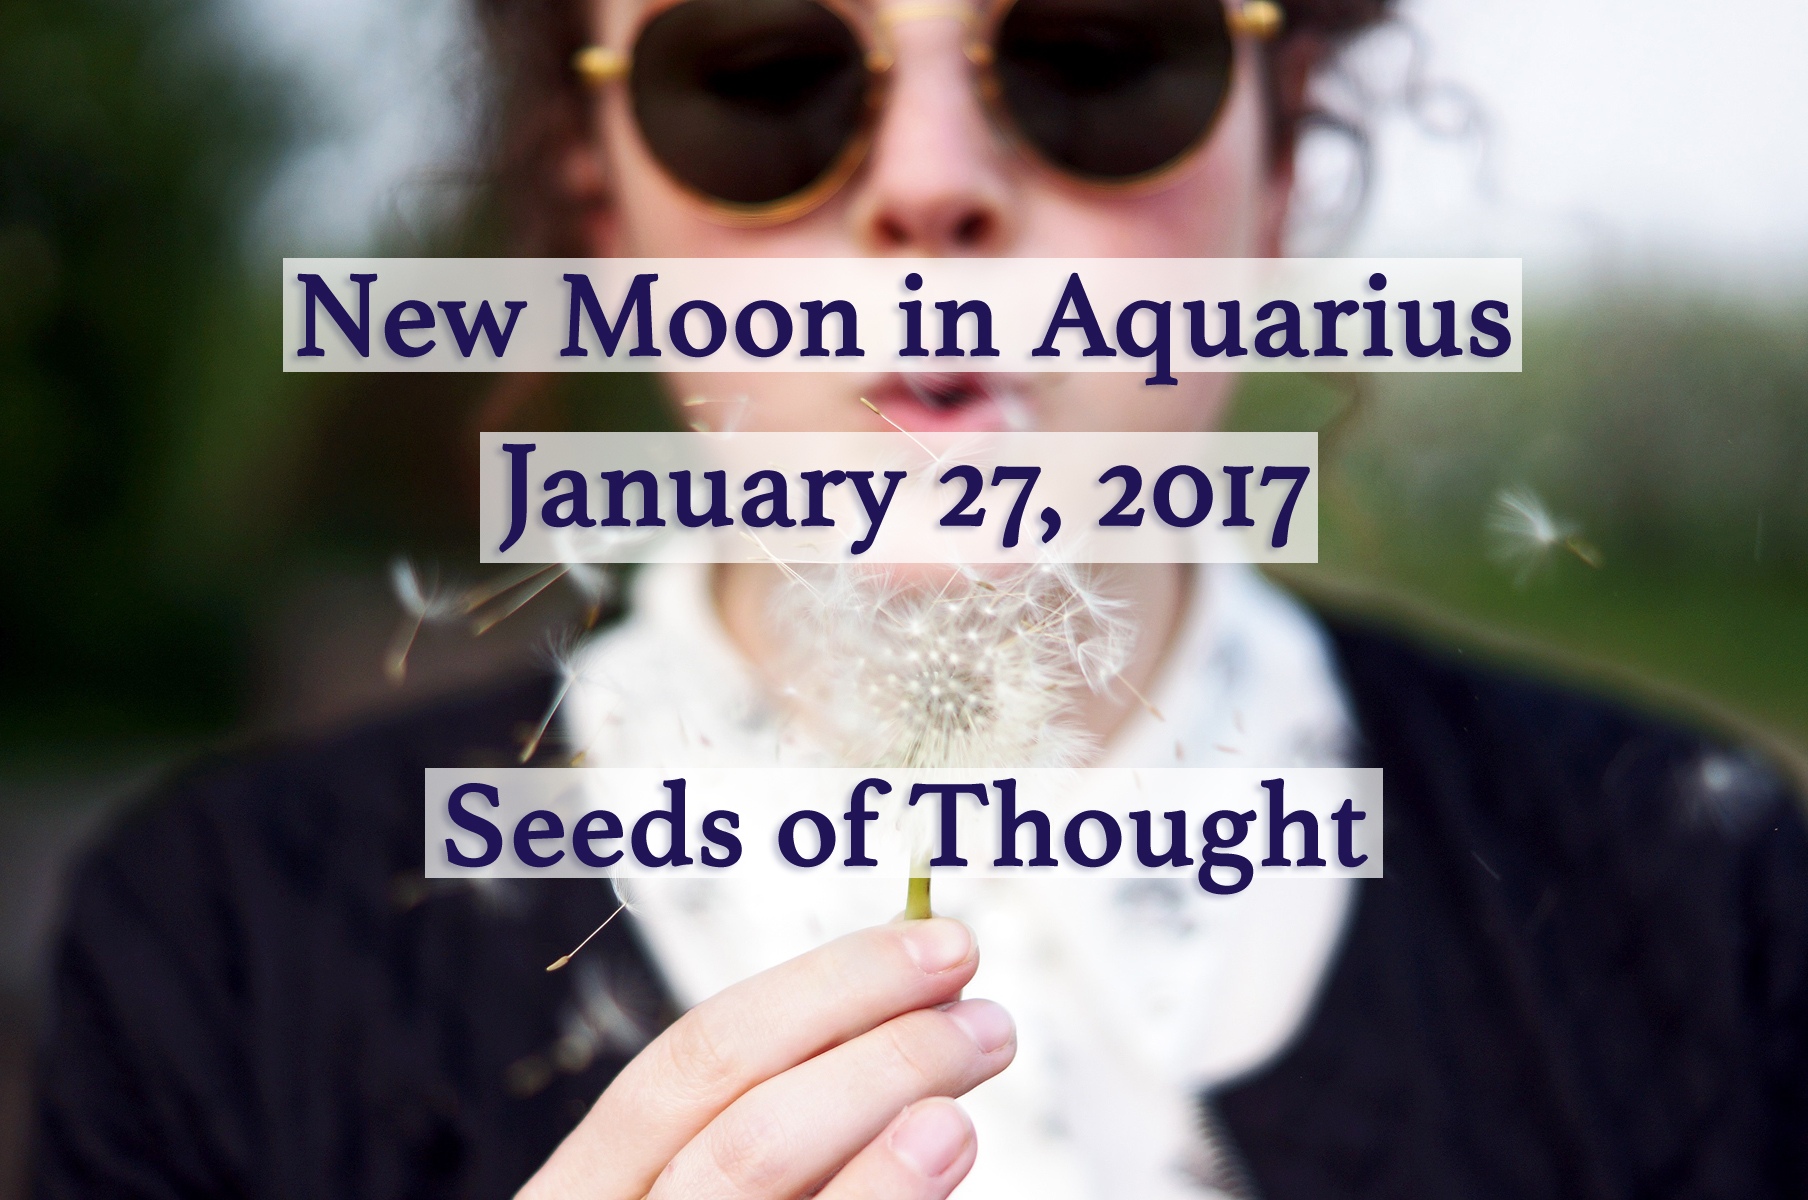 New Moon in Aquarius: Seeds of Thought